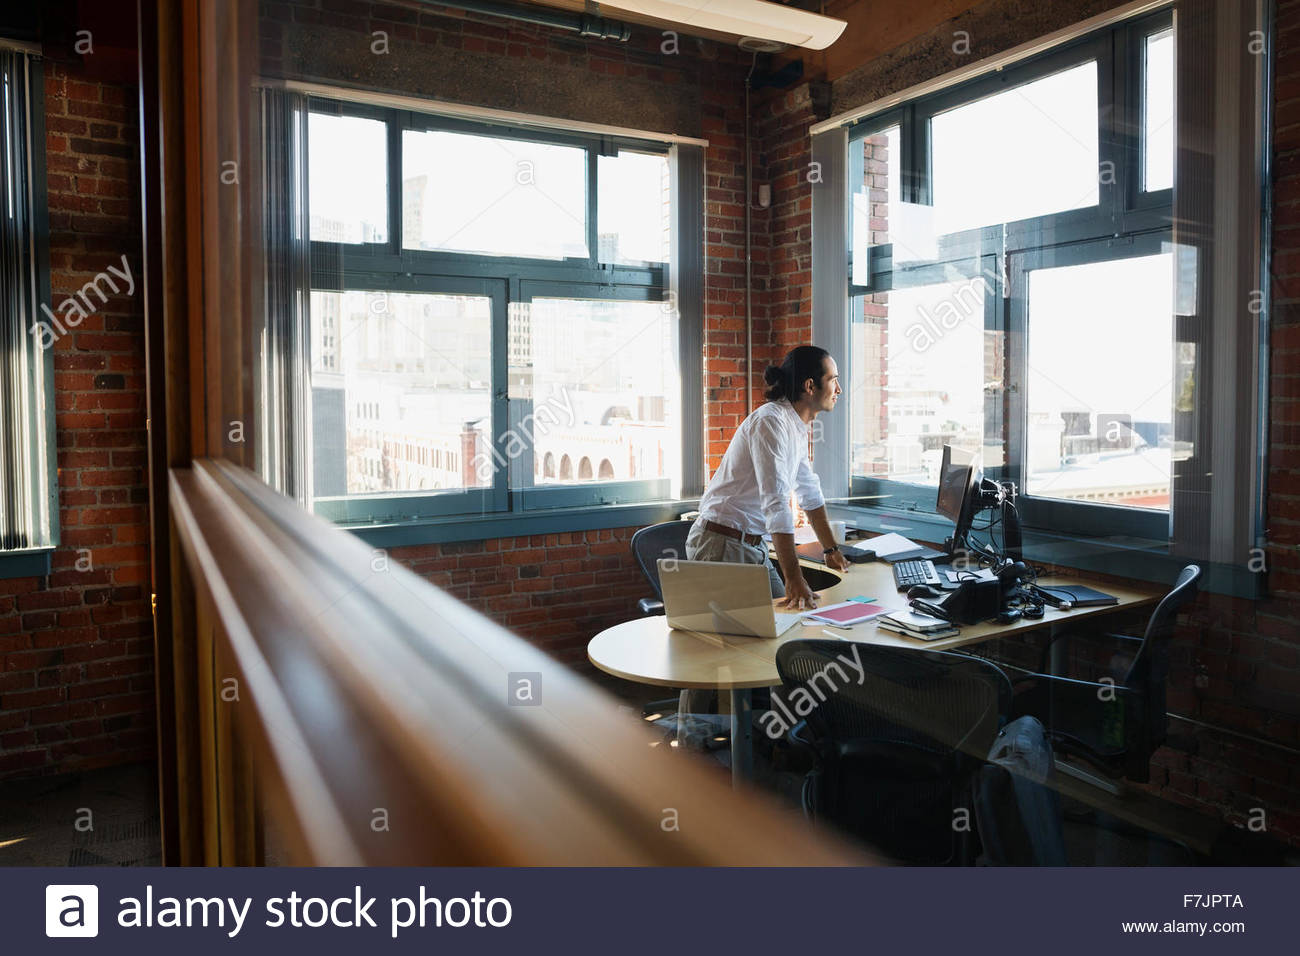 Pensive businessman looking out office window Photo Stock